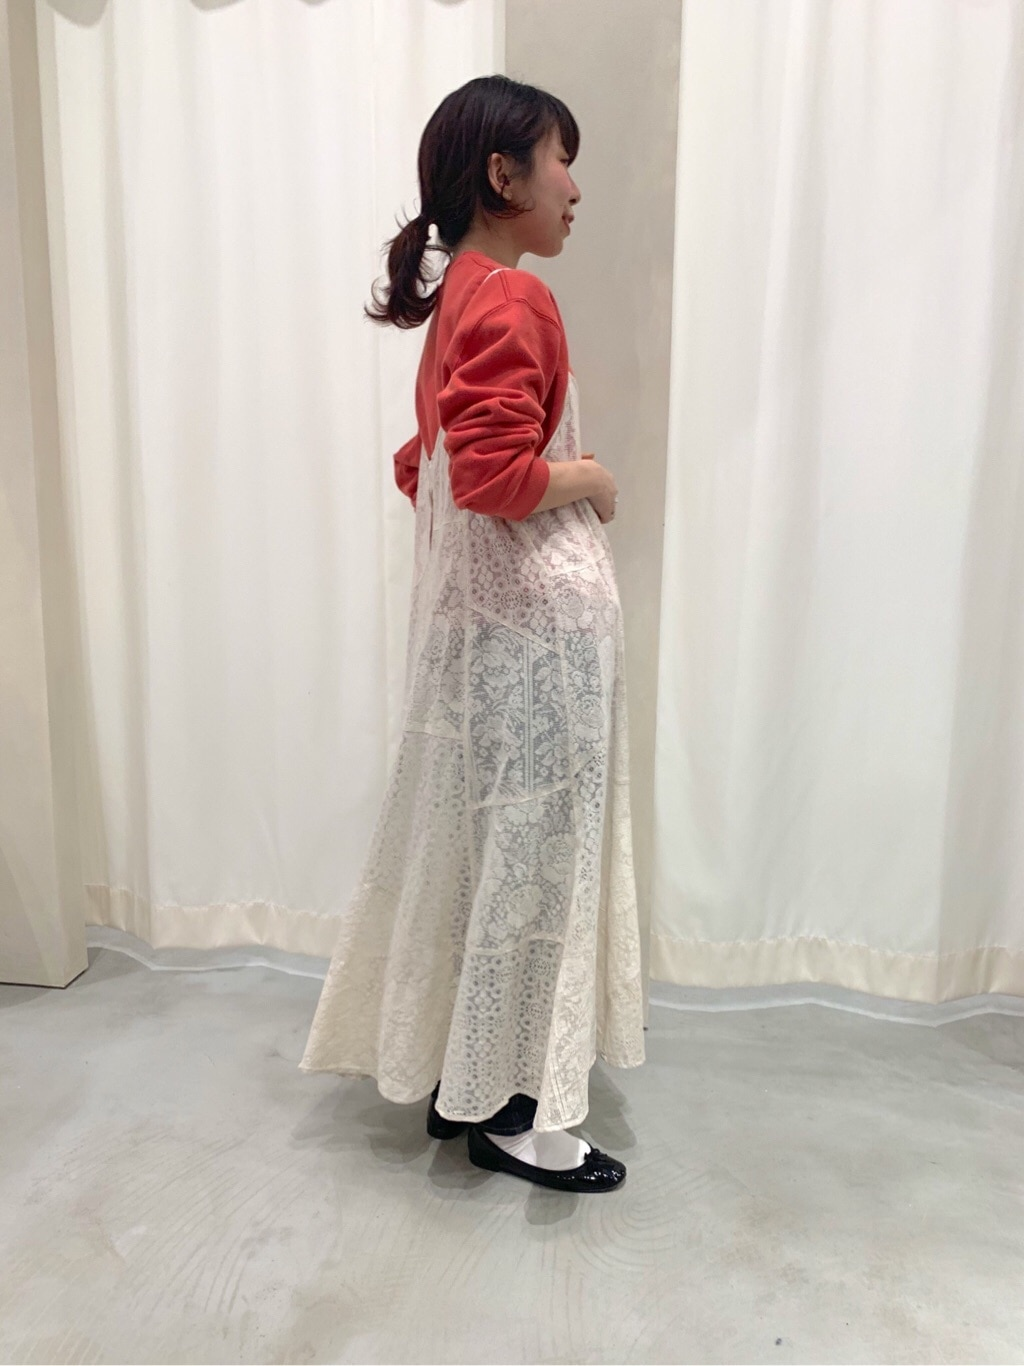 AMB SHOP PAR ICI CHILD WOMAN,PAR ICI ルミネ横浜 身長:154cm 2020.03.25